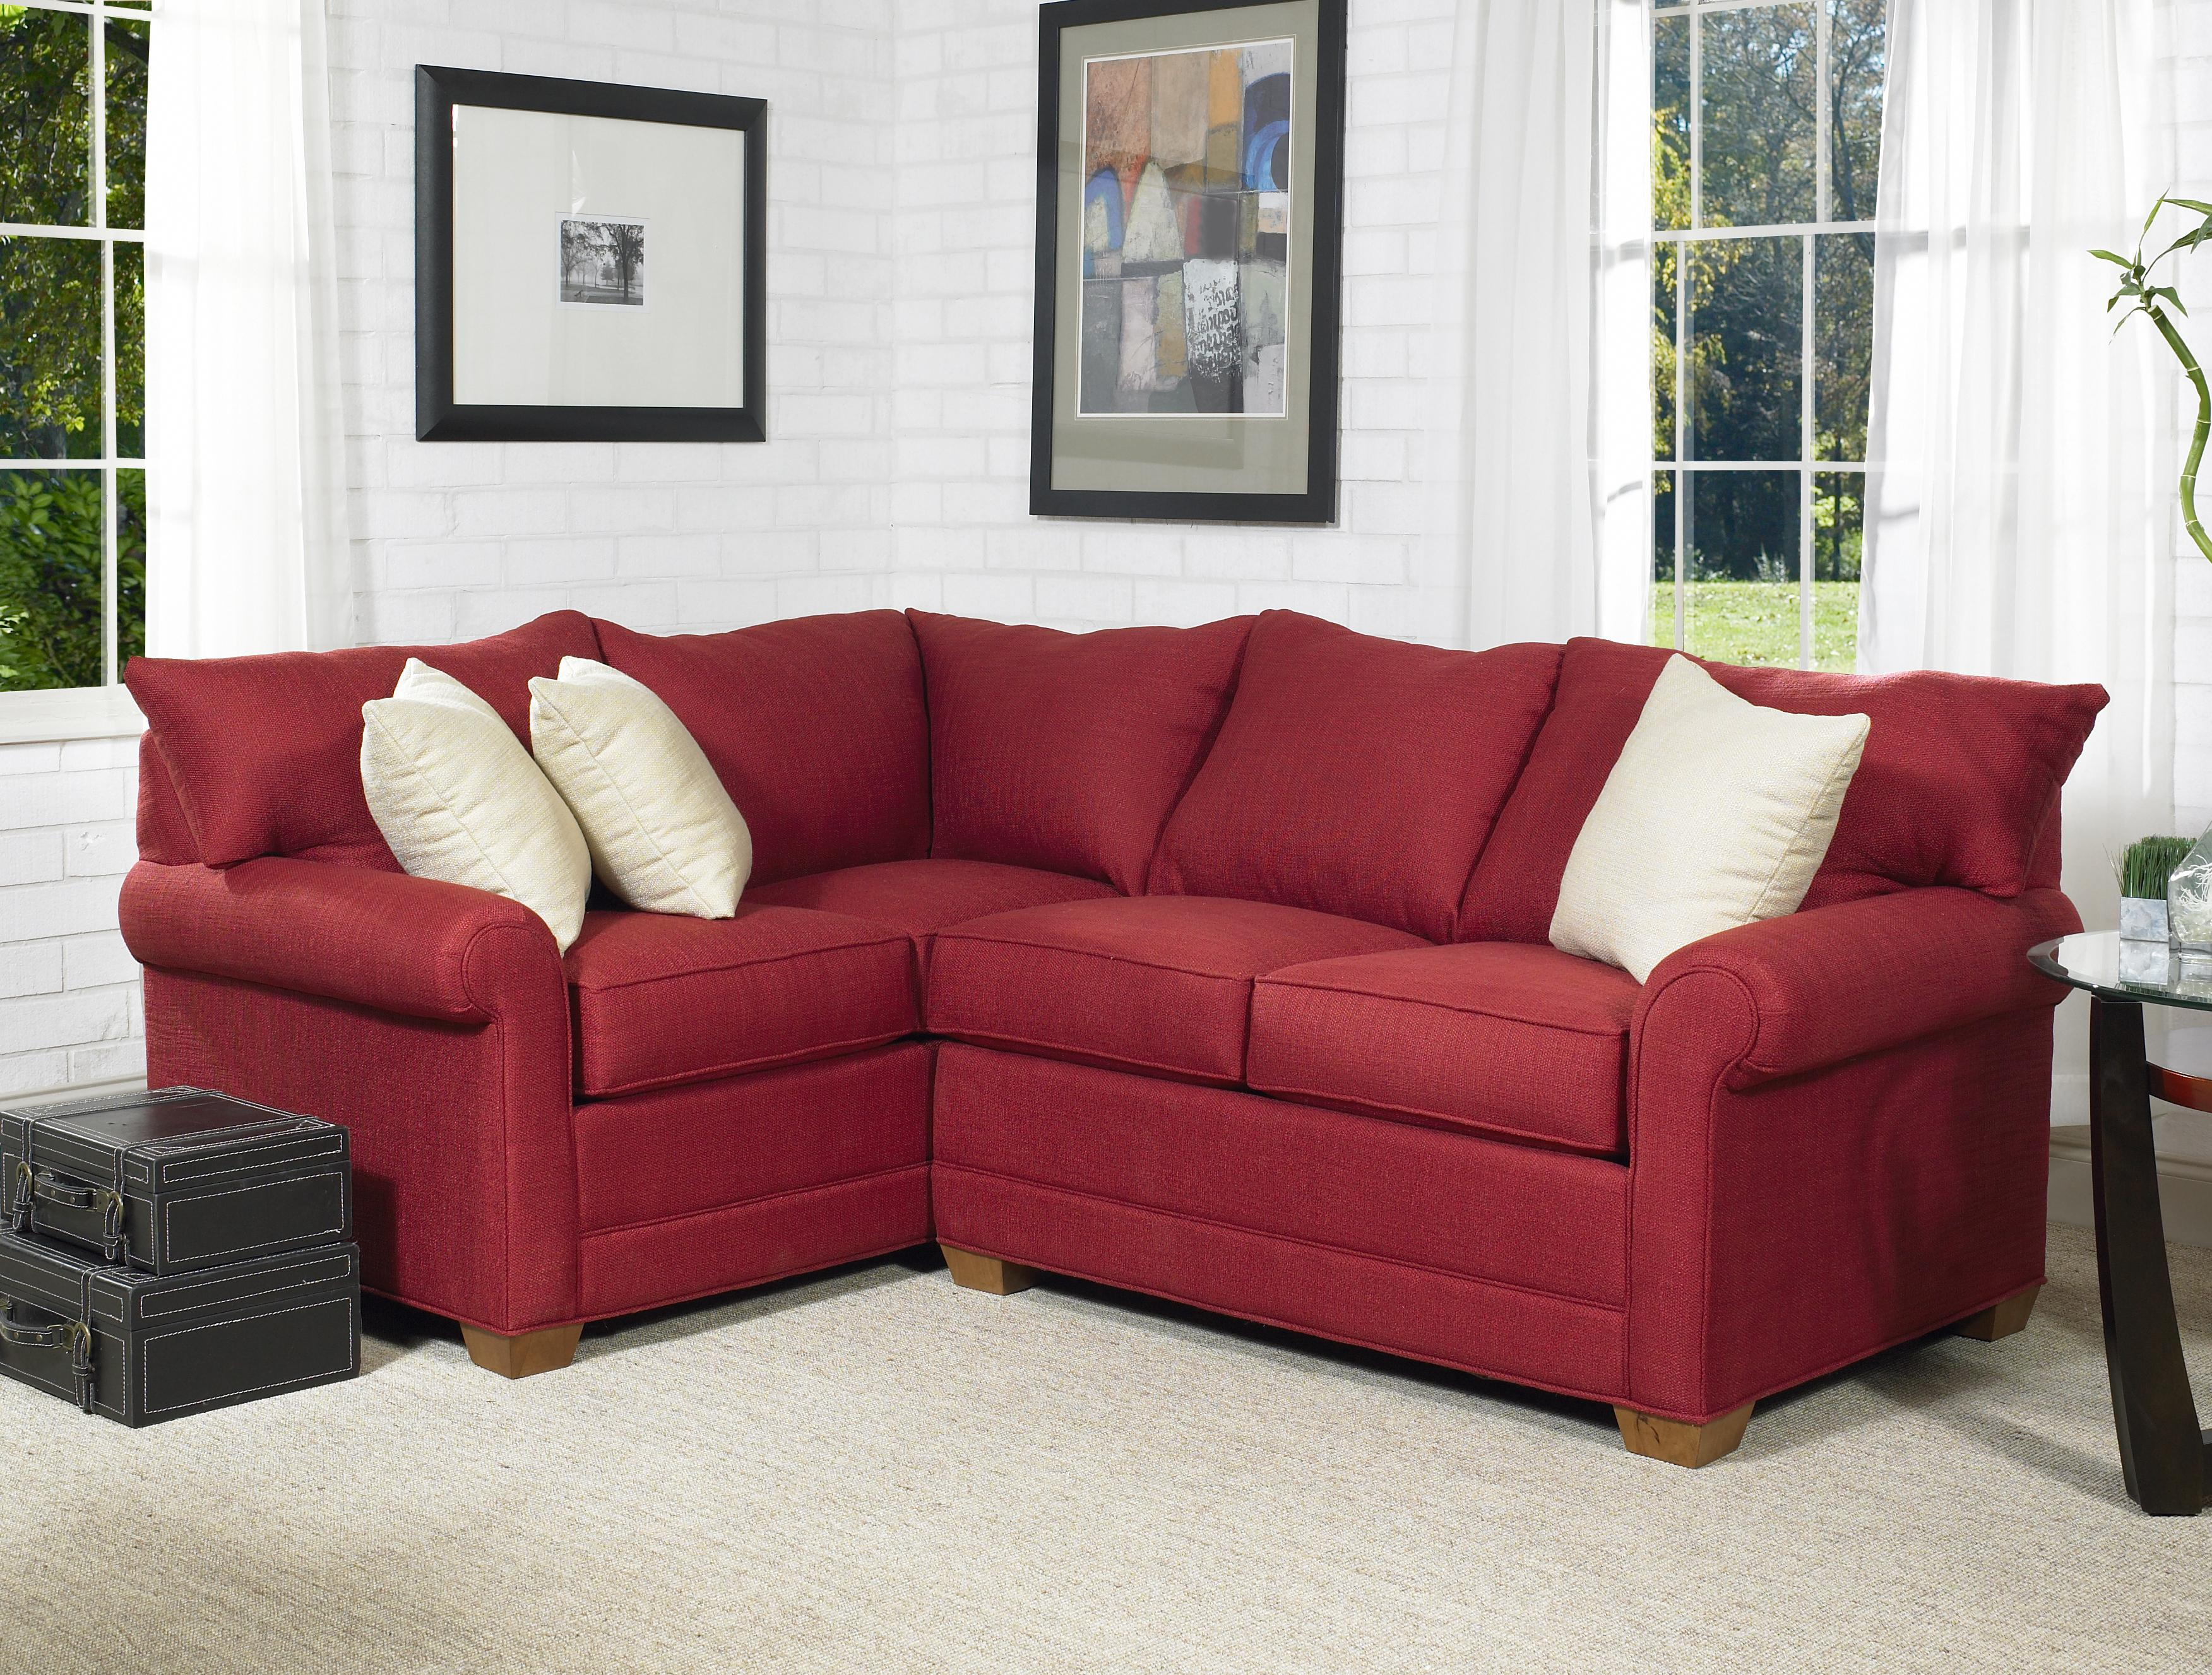 Lancer 110 Loveseat Sectional Group   Wayside Furniture   Sofa Sectional